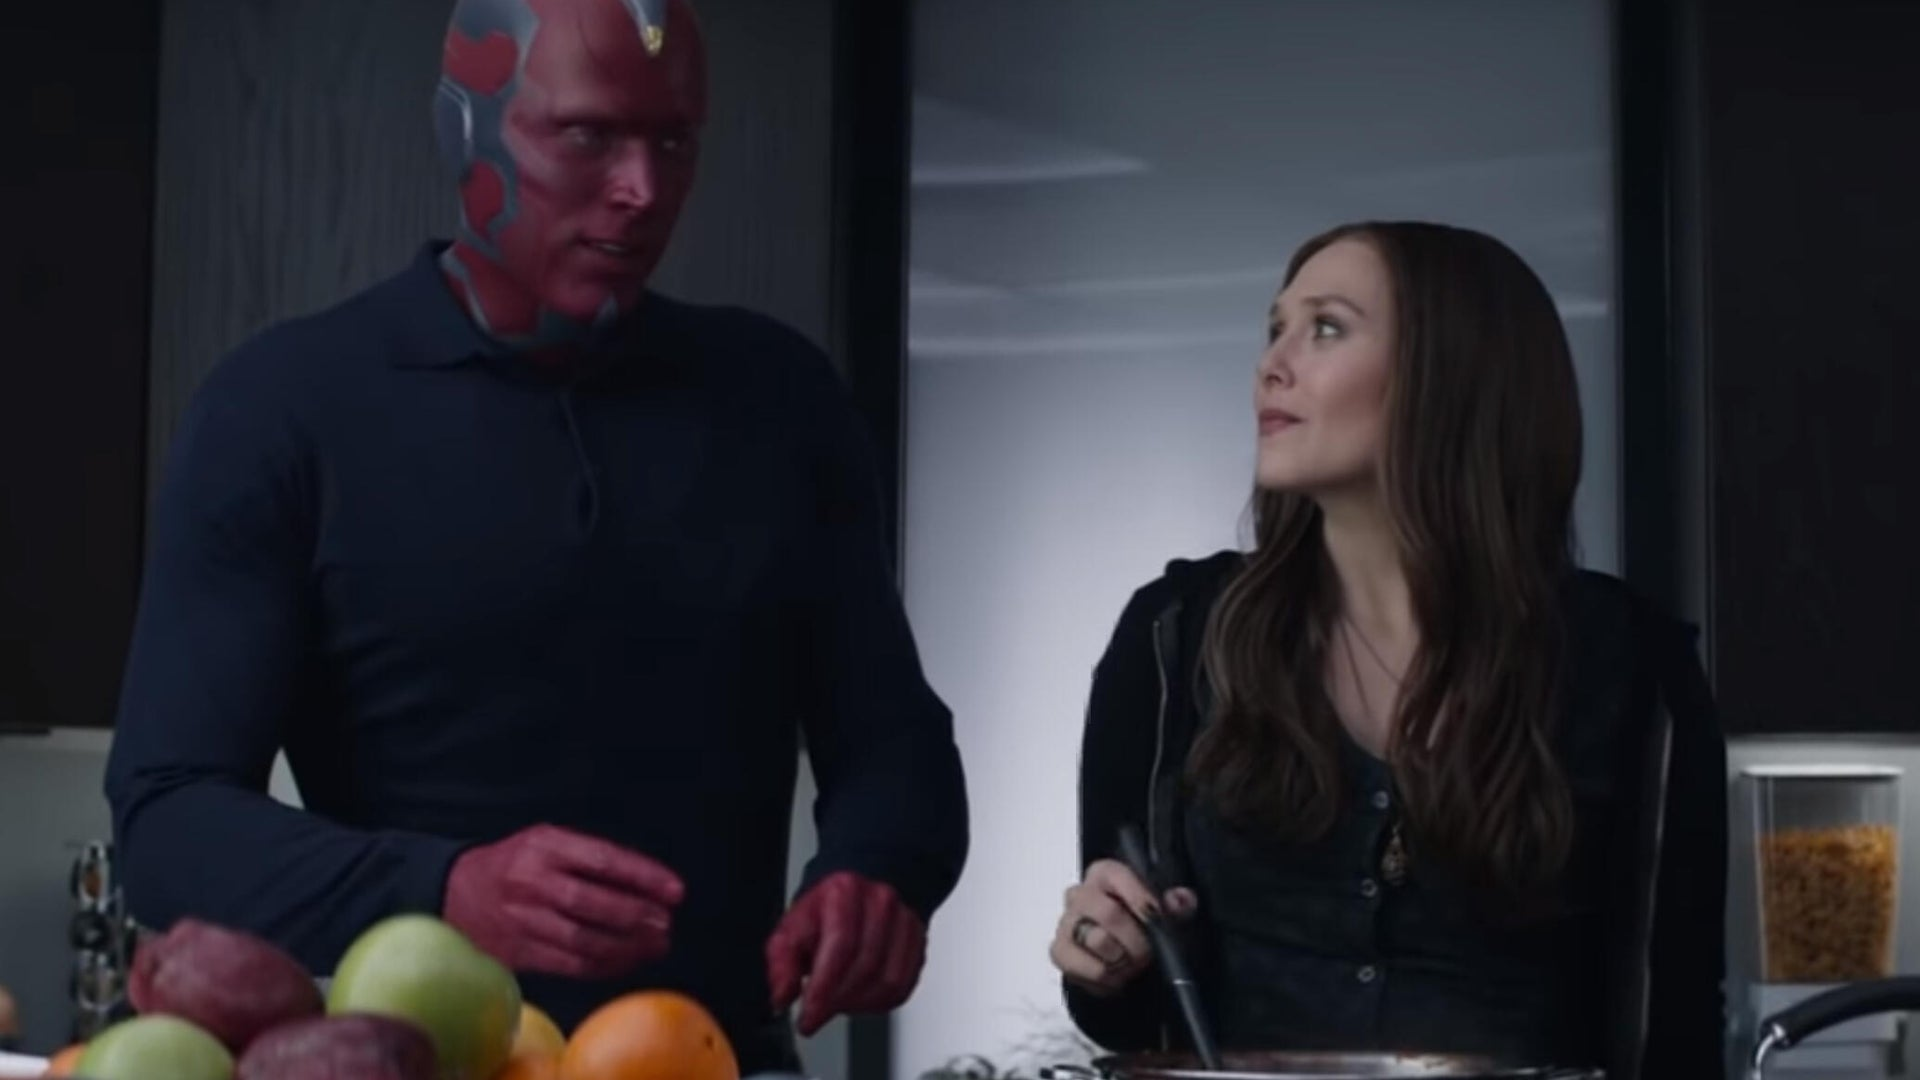 Paul Bettany and Elizabeth Olsen as Vision and Scarlet Witch